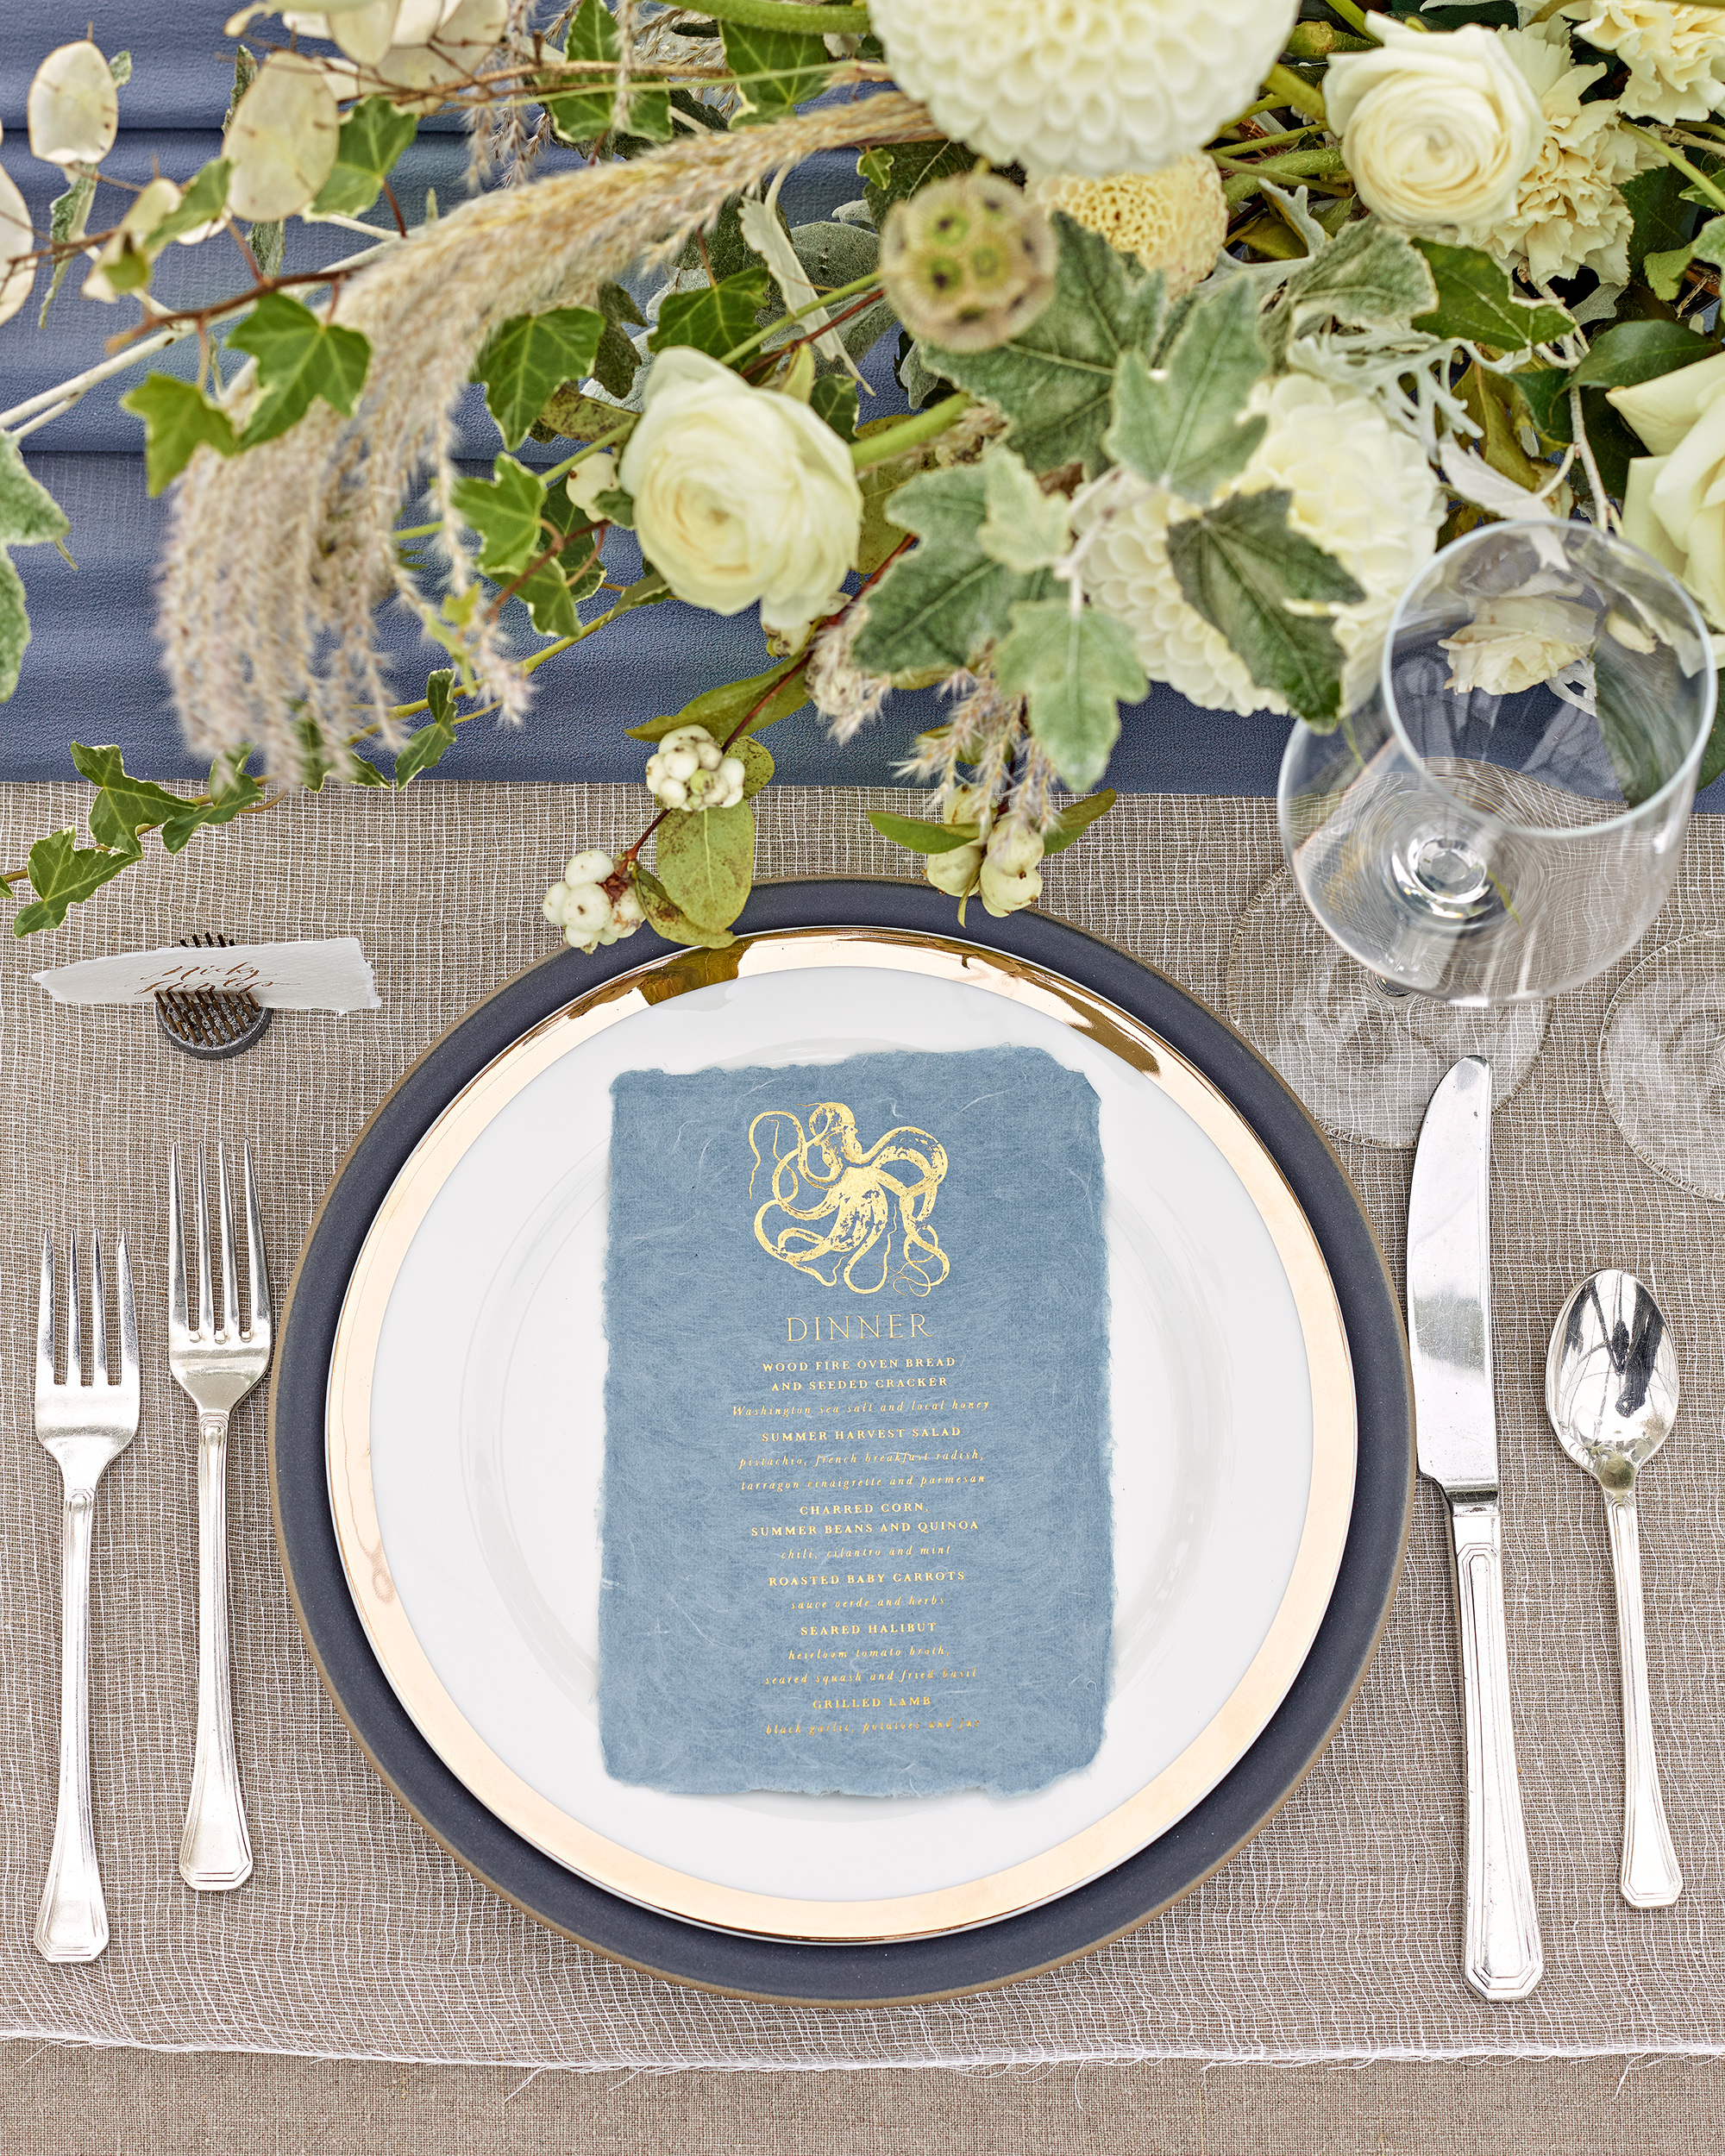 kaitlin dan wedding place setting